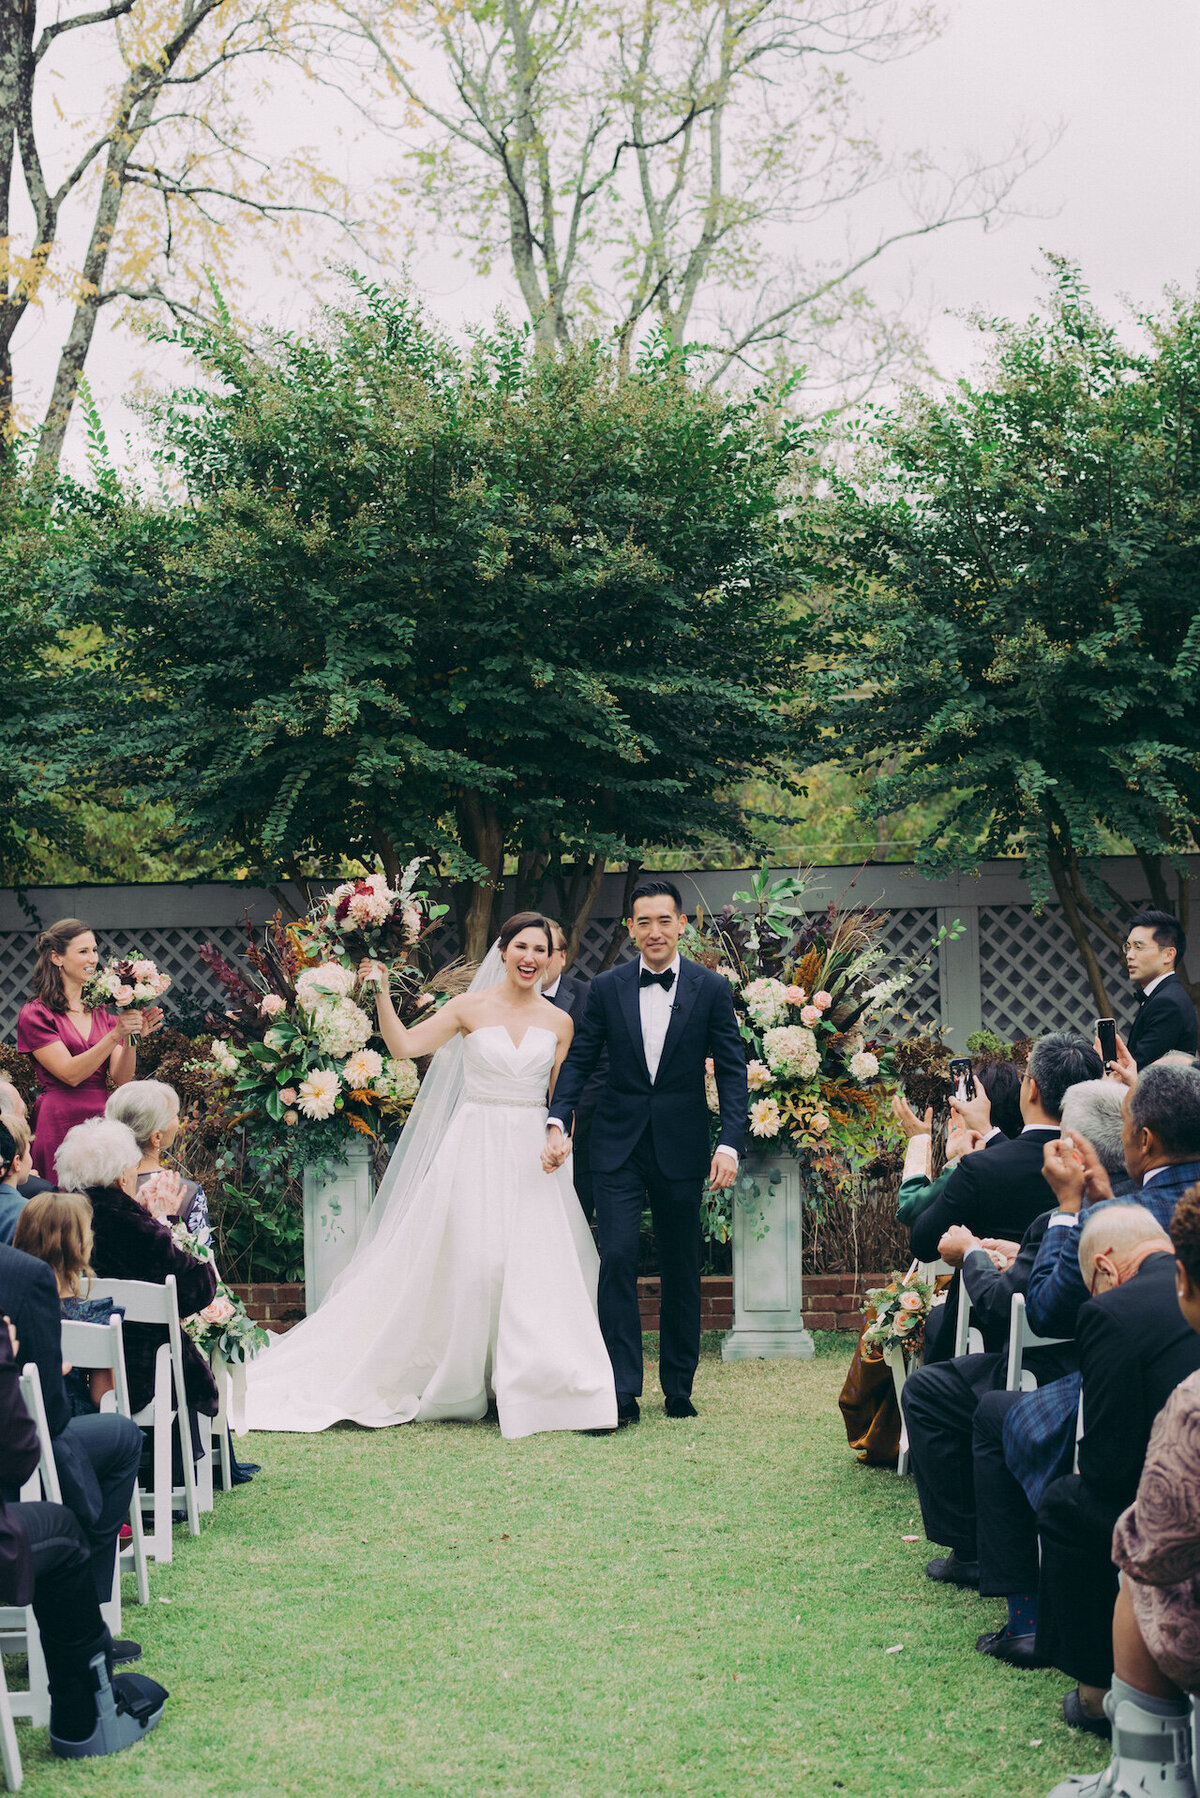 Walking Up the Aisle Wedding Photograph Robert Aveau for © Bonnie Sen Photography